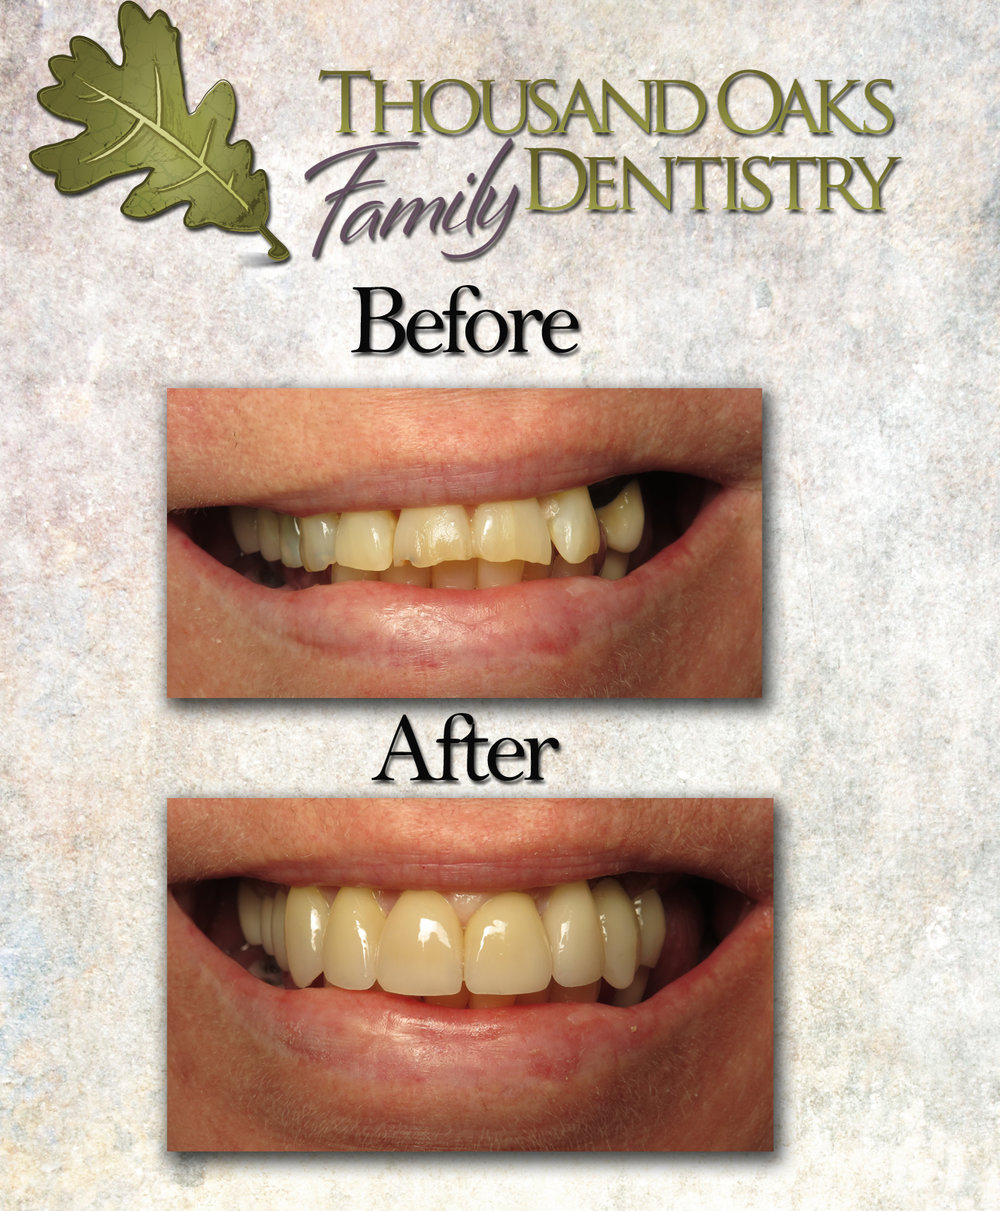 ThousandOaksFamilyDentistry